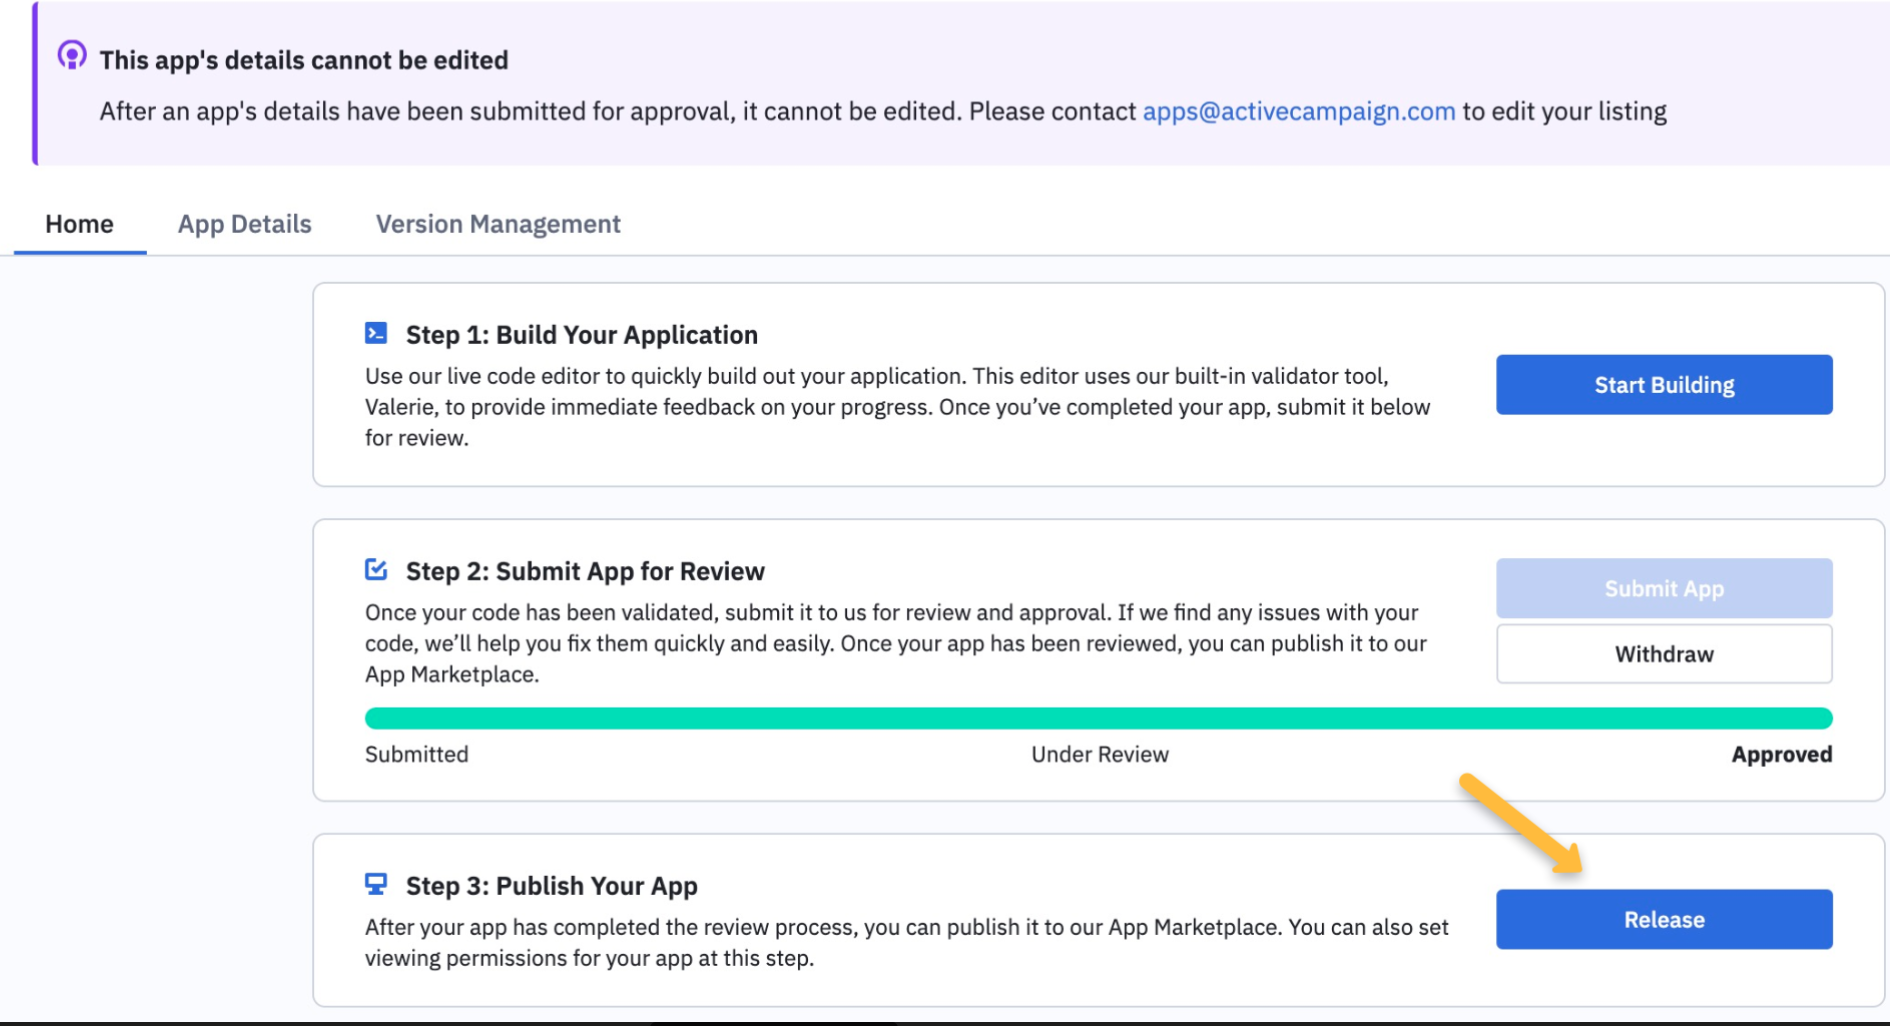 After review and approval, you must click the Release button to publish the app.